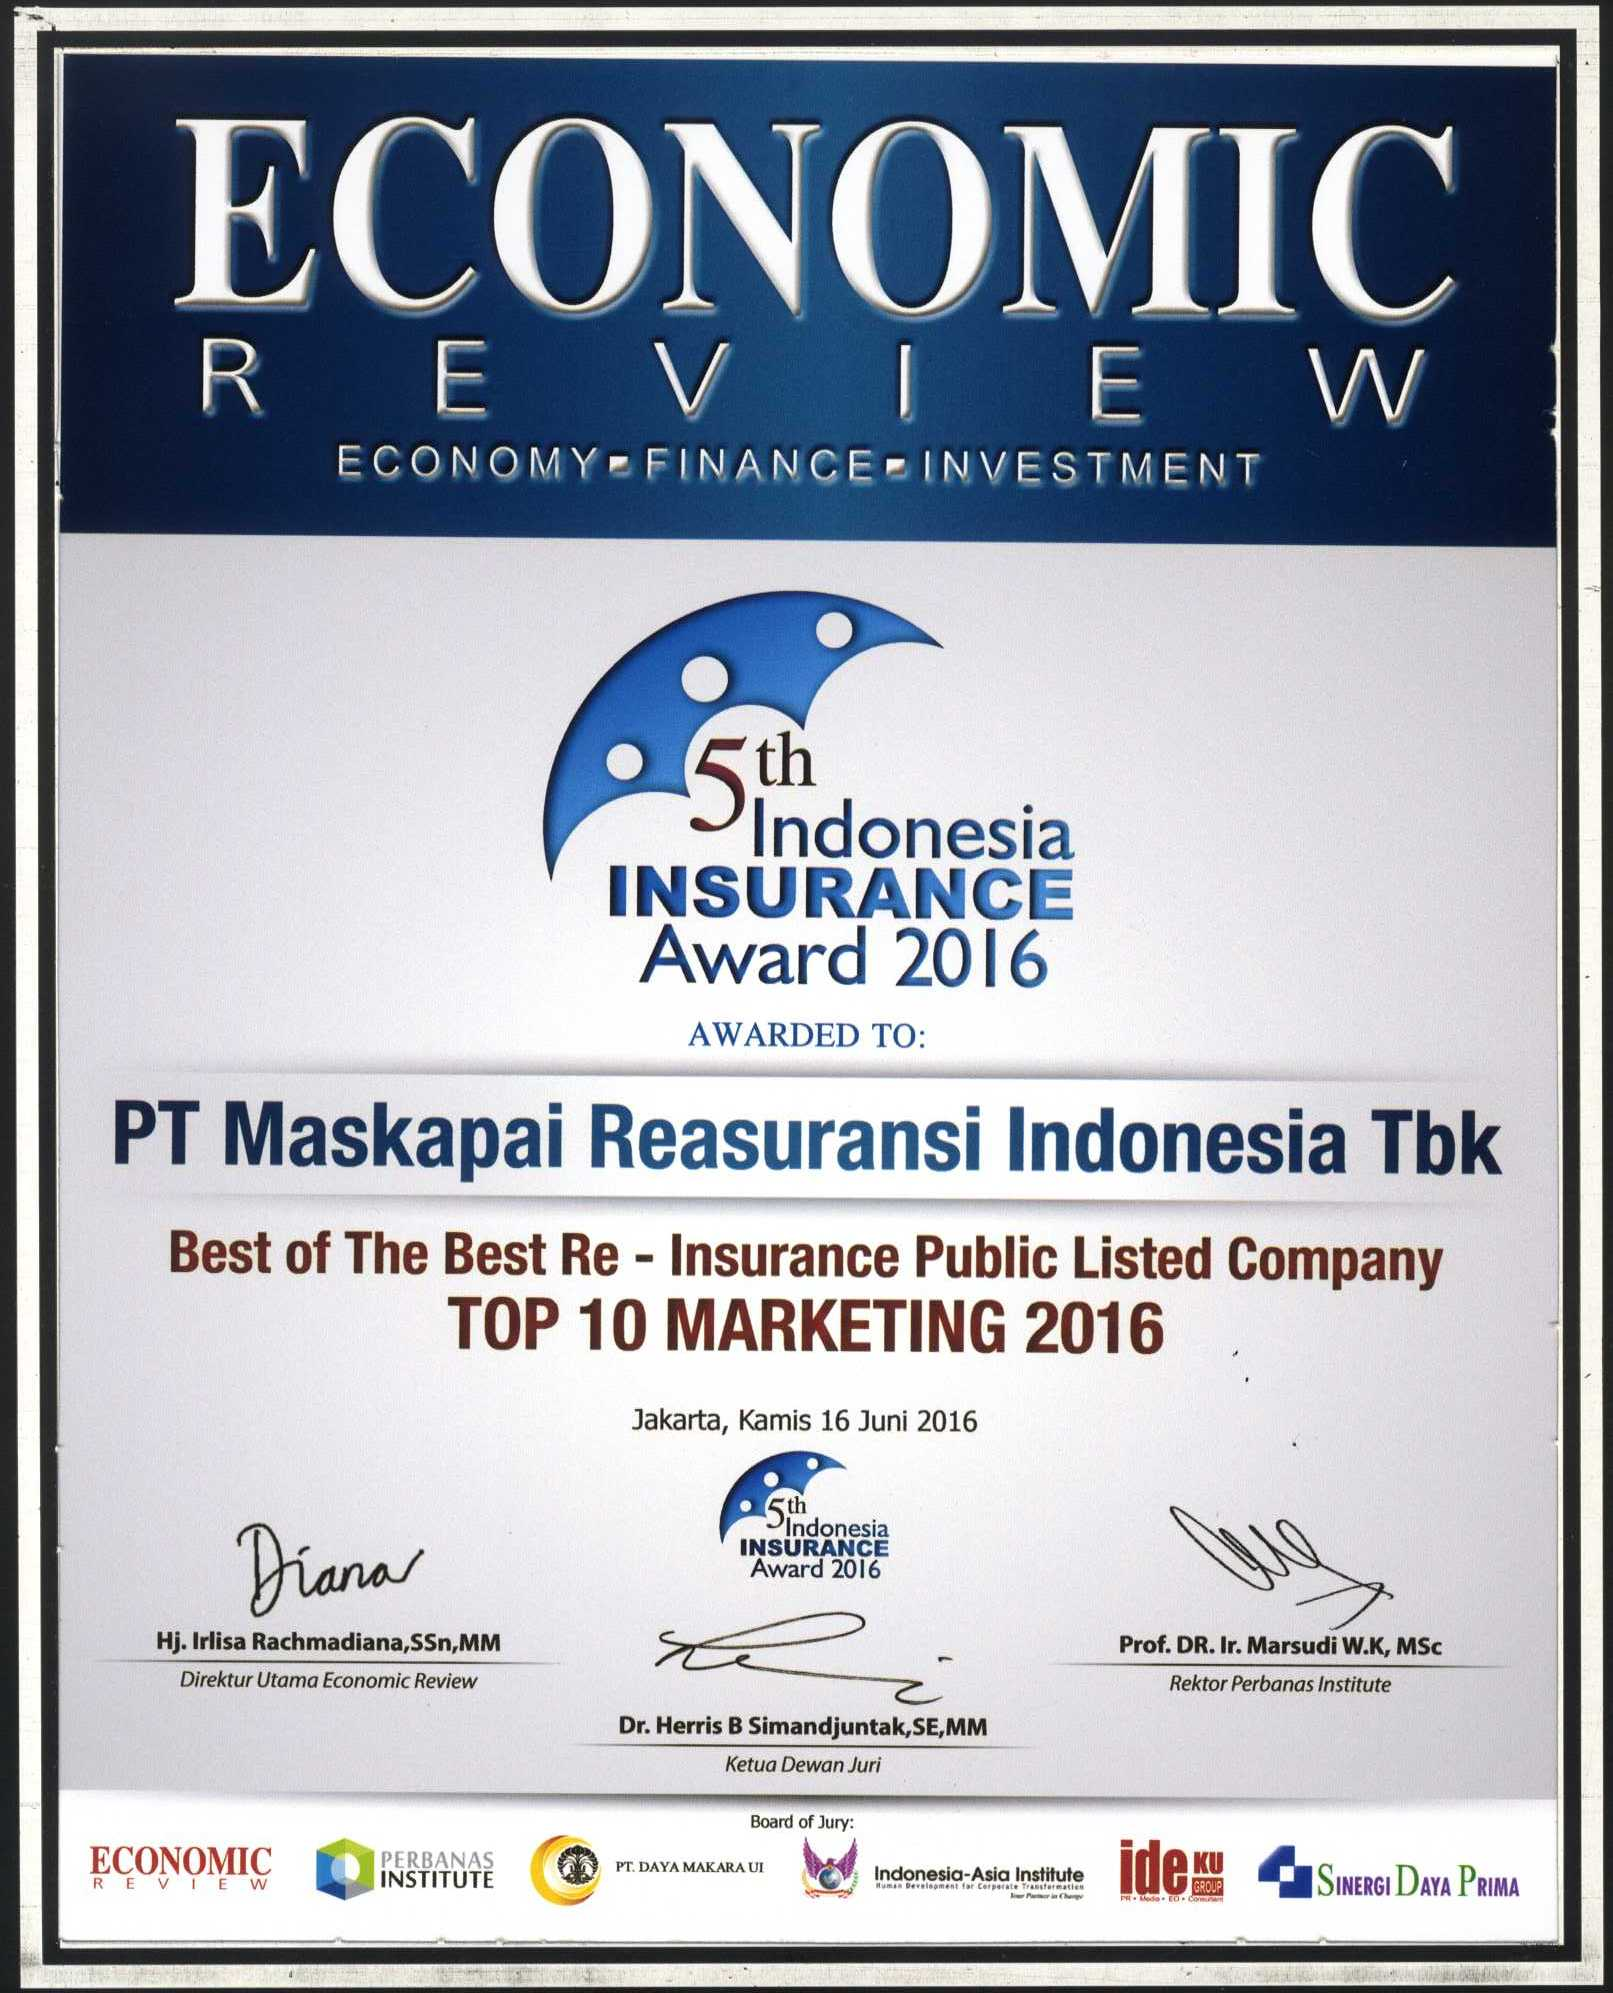 Majalah Economic Review : Top 10 Marketing 2016 - 5th Indonesia Insurance Award 2016